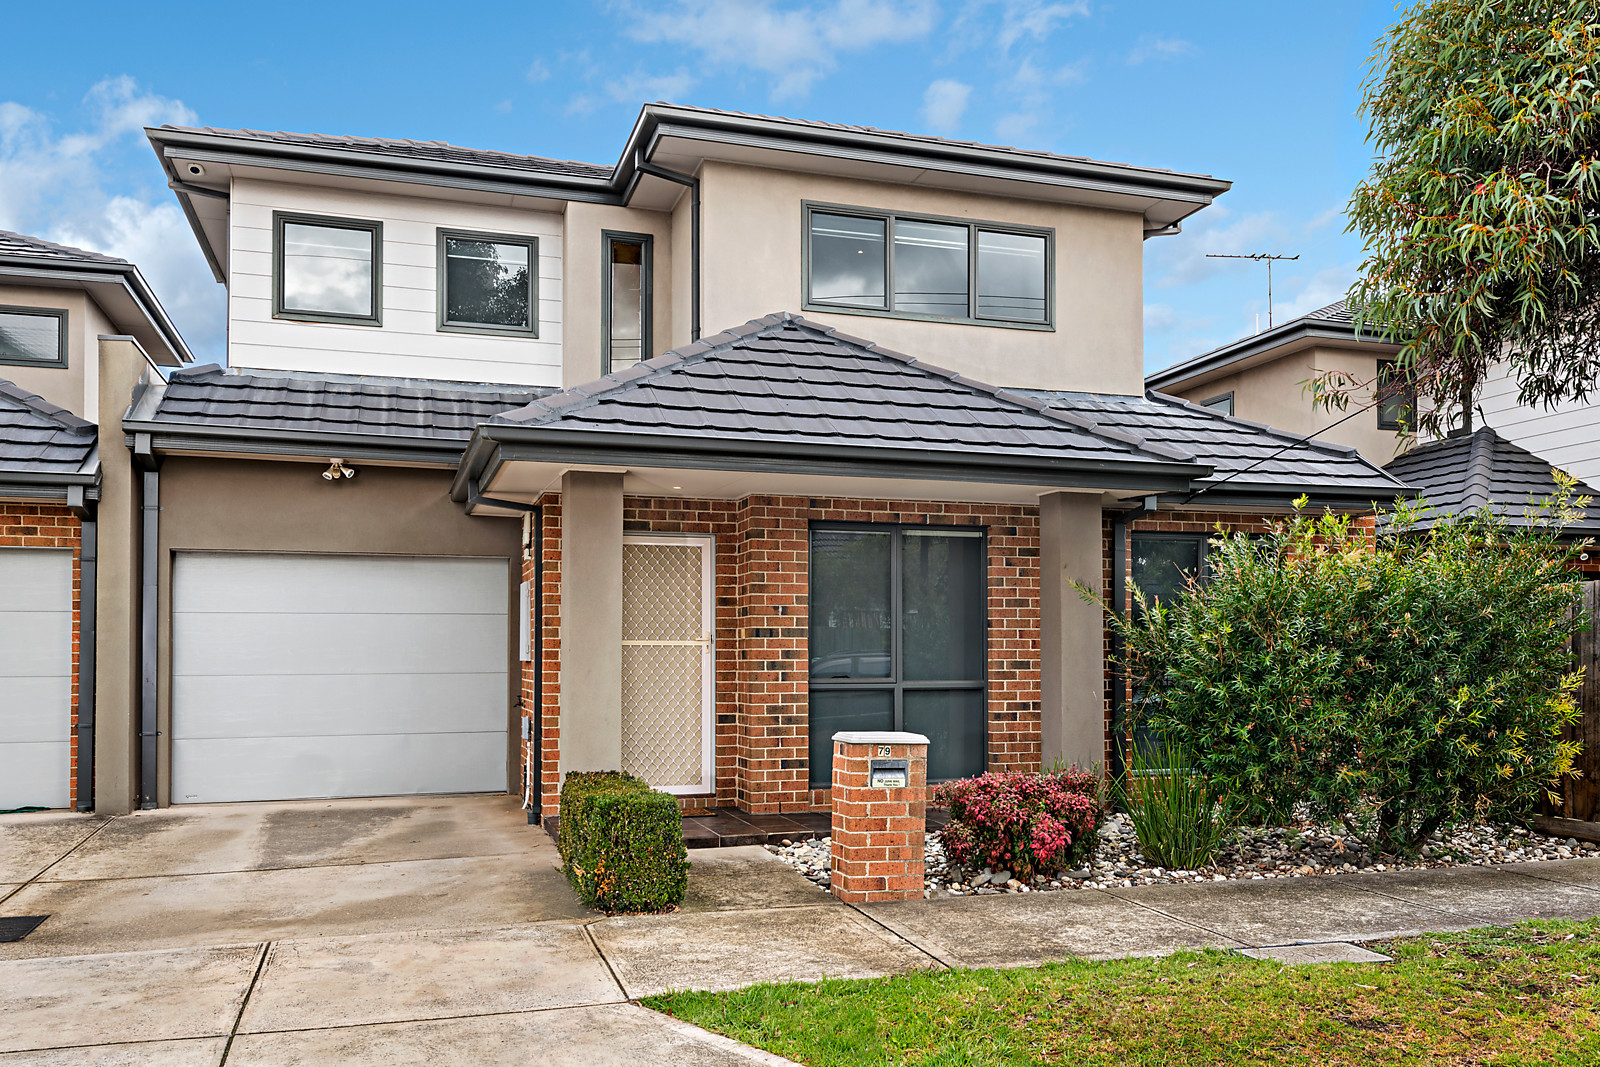 79 Eastgate Street, Pascoe Vale South, VIC, 3044 image 1